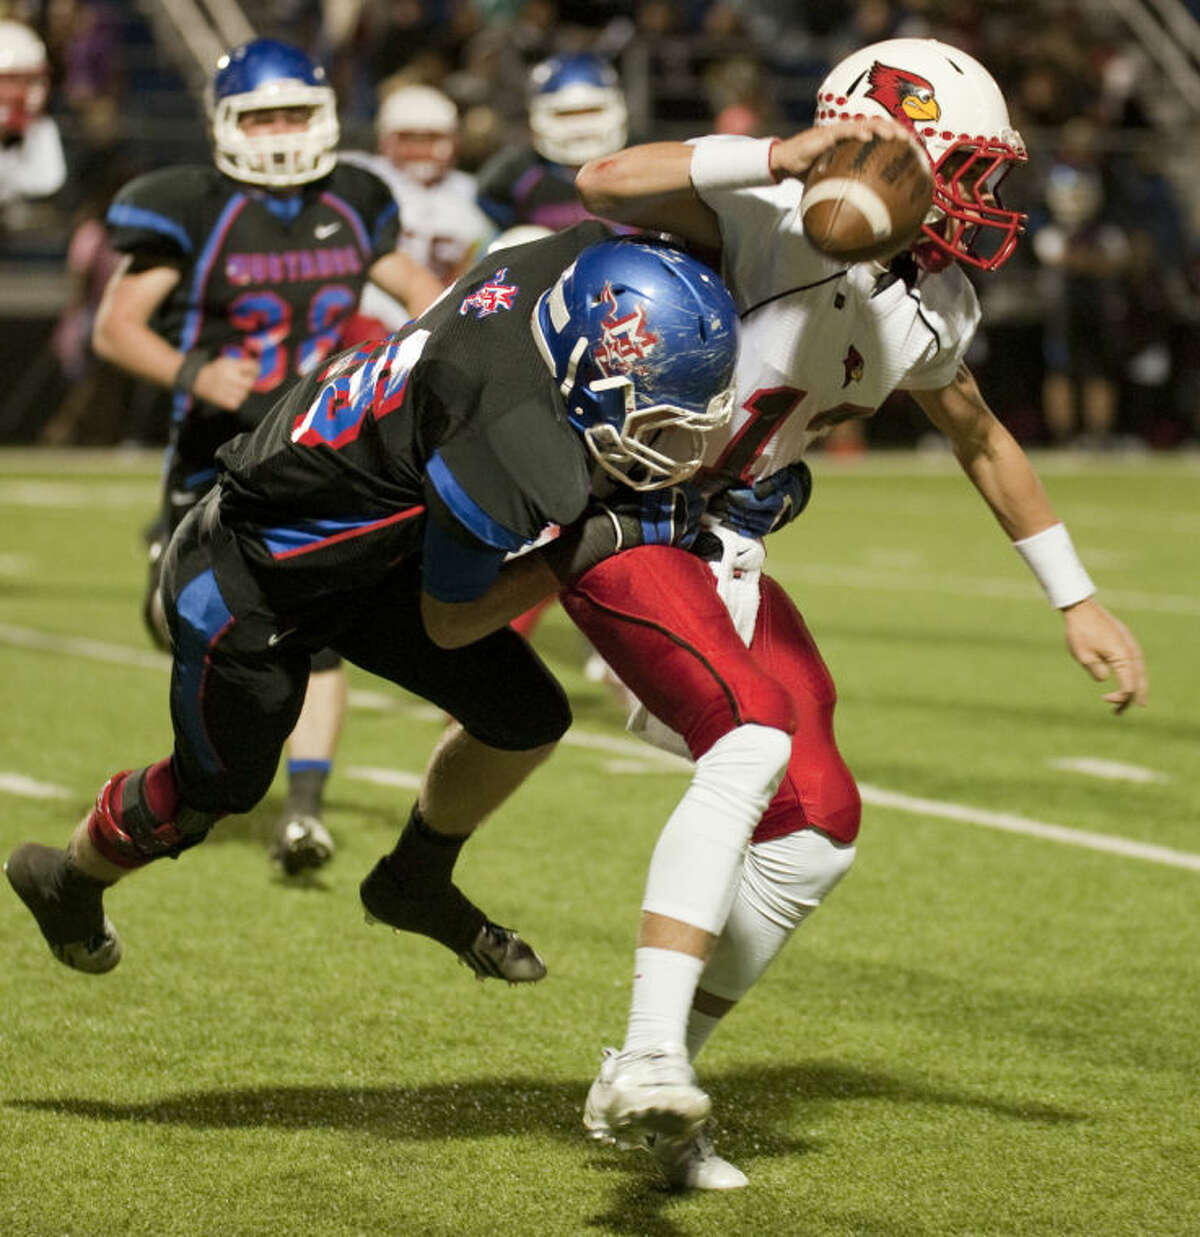 Midland Christian's Reid Talley holds on to bring down Fort Worth Christian's Blaze Brownlow on Friday at Mustang Field. Tim Fischer\Reporter-Telegram